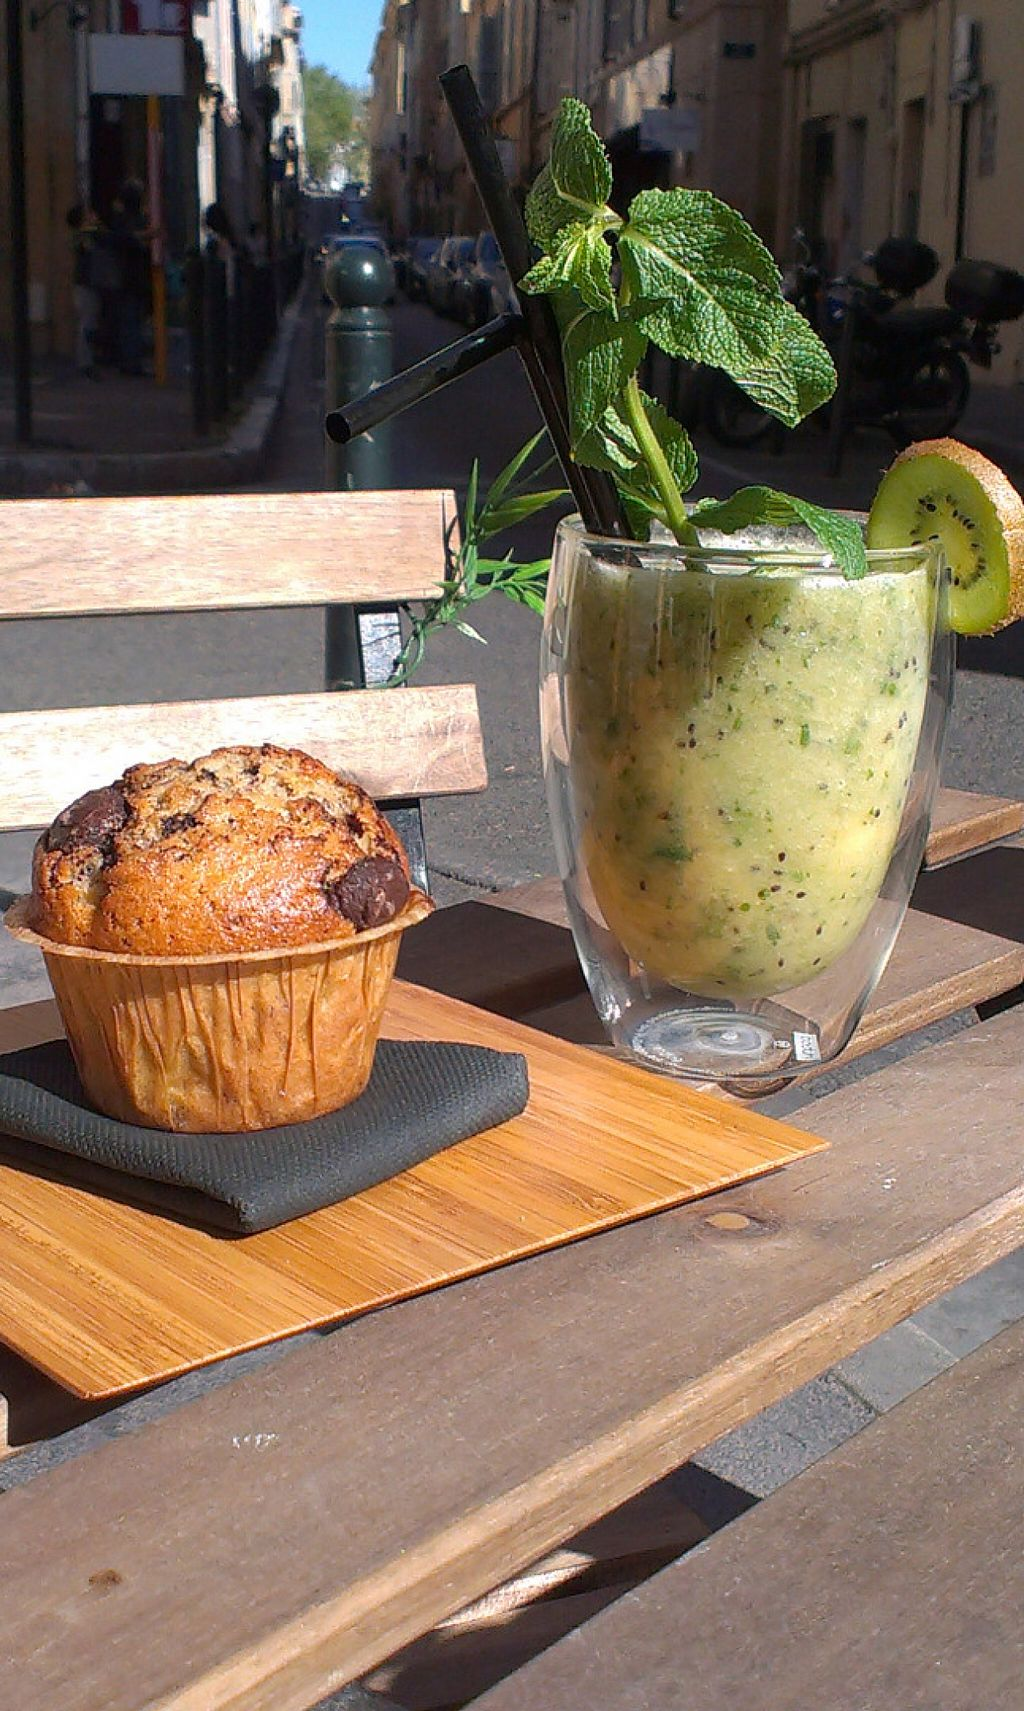 "Photo of Bonnie Day  by <a href=""/members/profile/tripapied"">tripapied</a> <br/>Banana, apple, kiwi and mint Smoothie, Orange and chocolate muffin <br/> May 27, 2016  - <a href='/contact/abuse/image/73479/150944'>Report</a>"